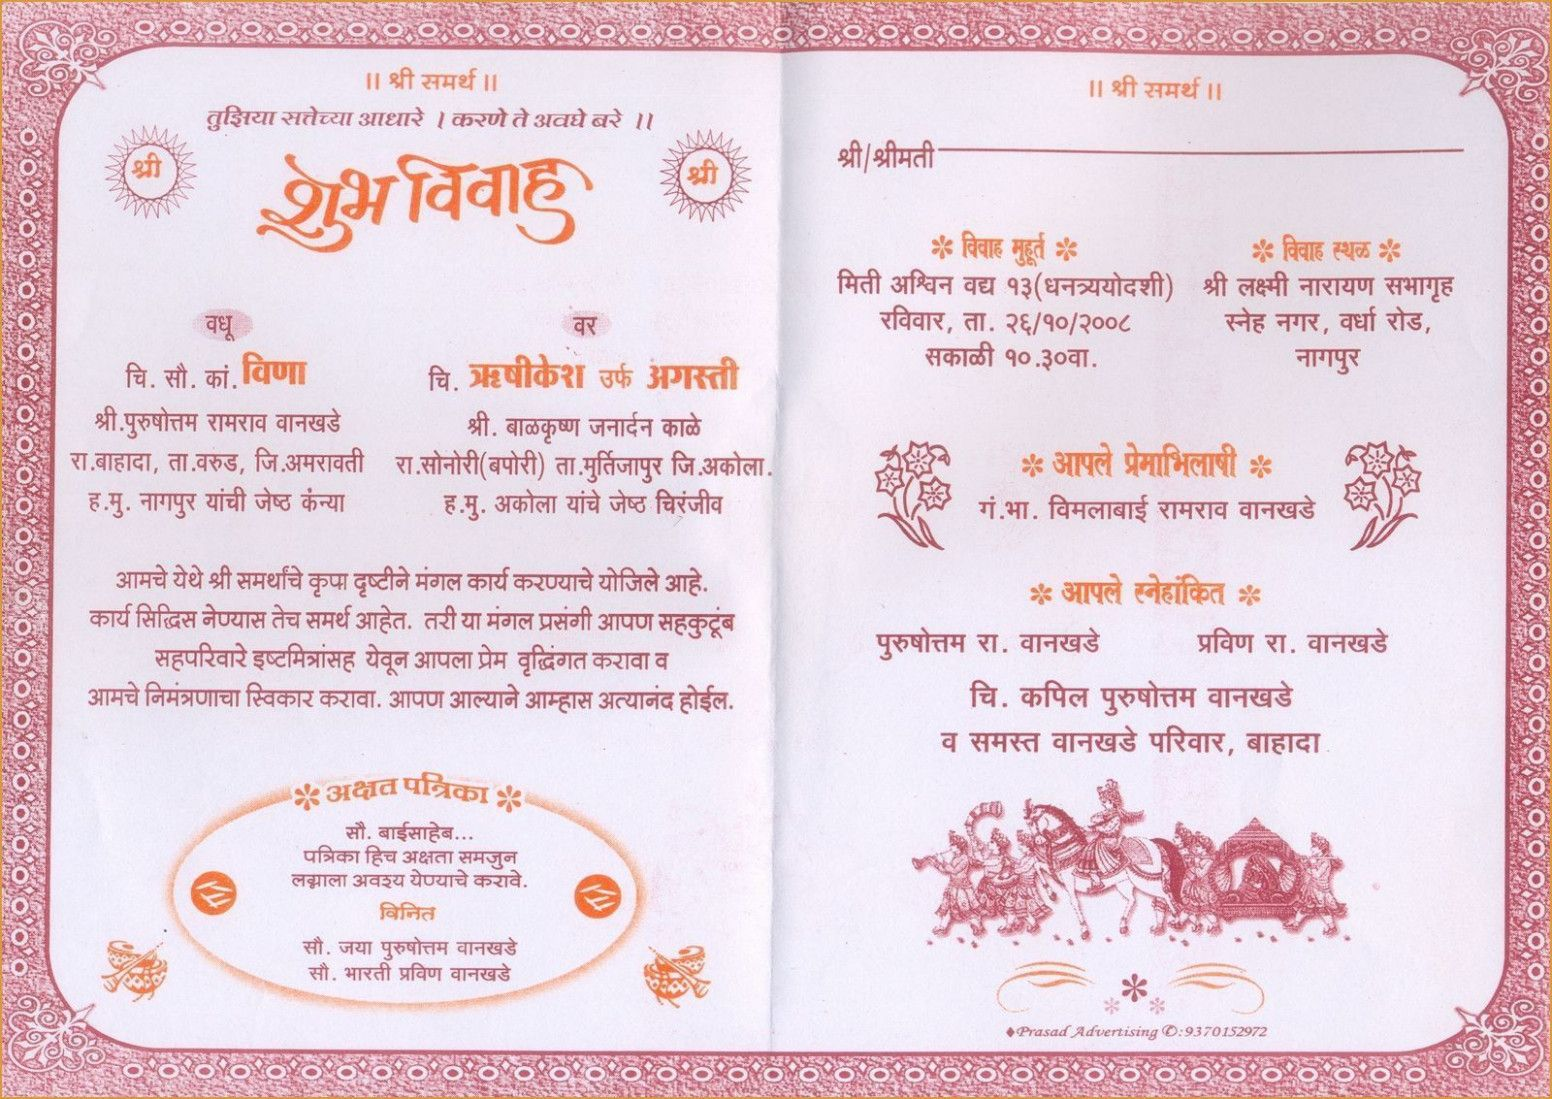 Hindi Card Wedding Matter Marriage Cards Marriage Invitations Hindu Wedding Cards